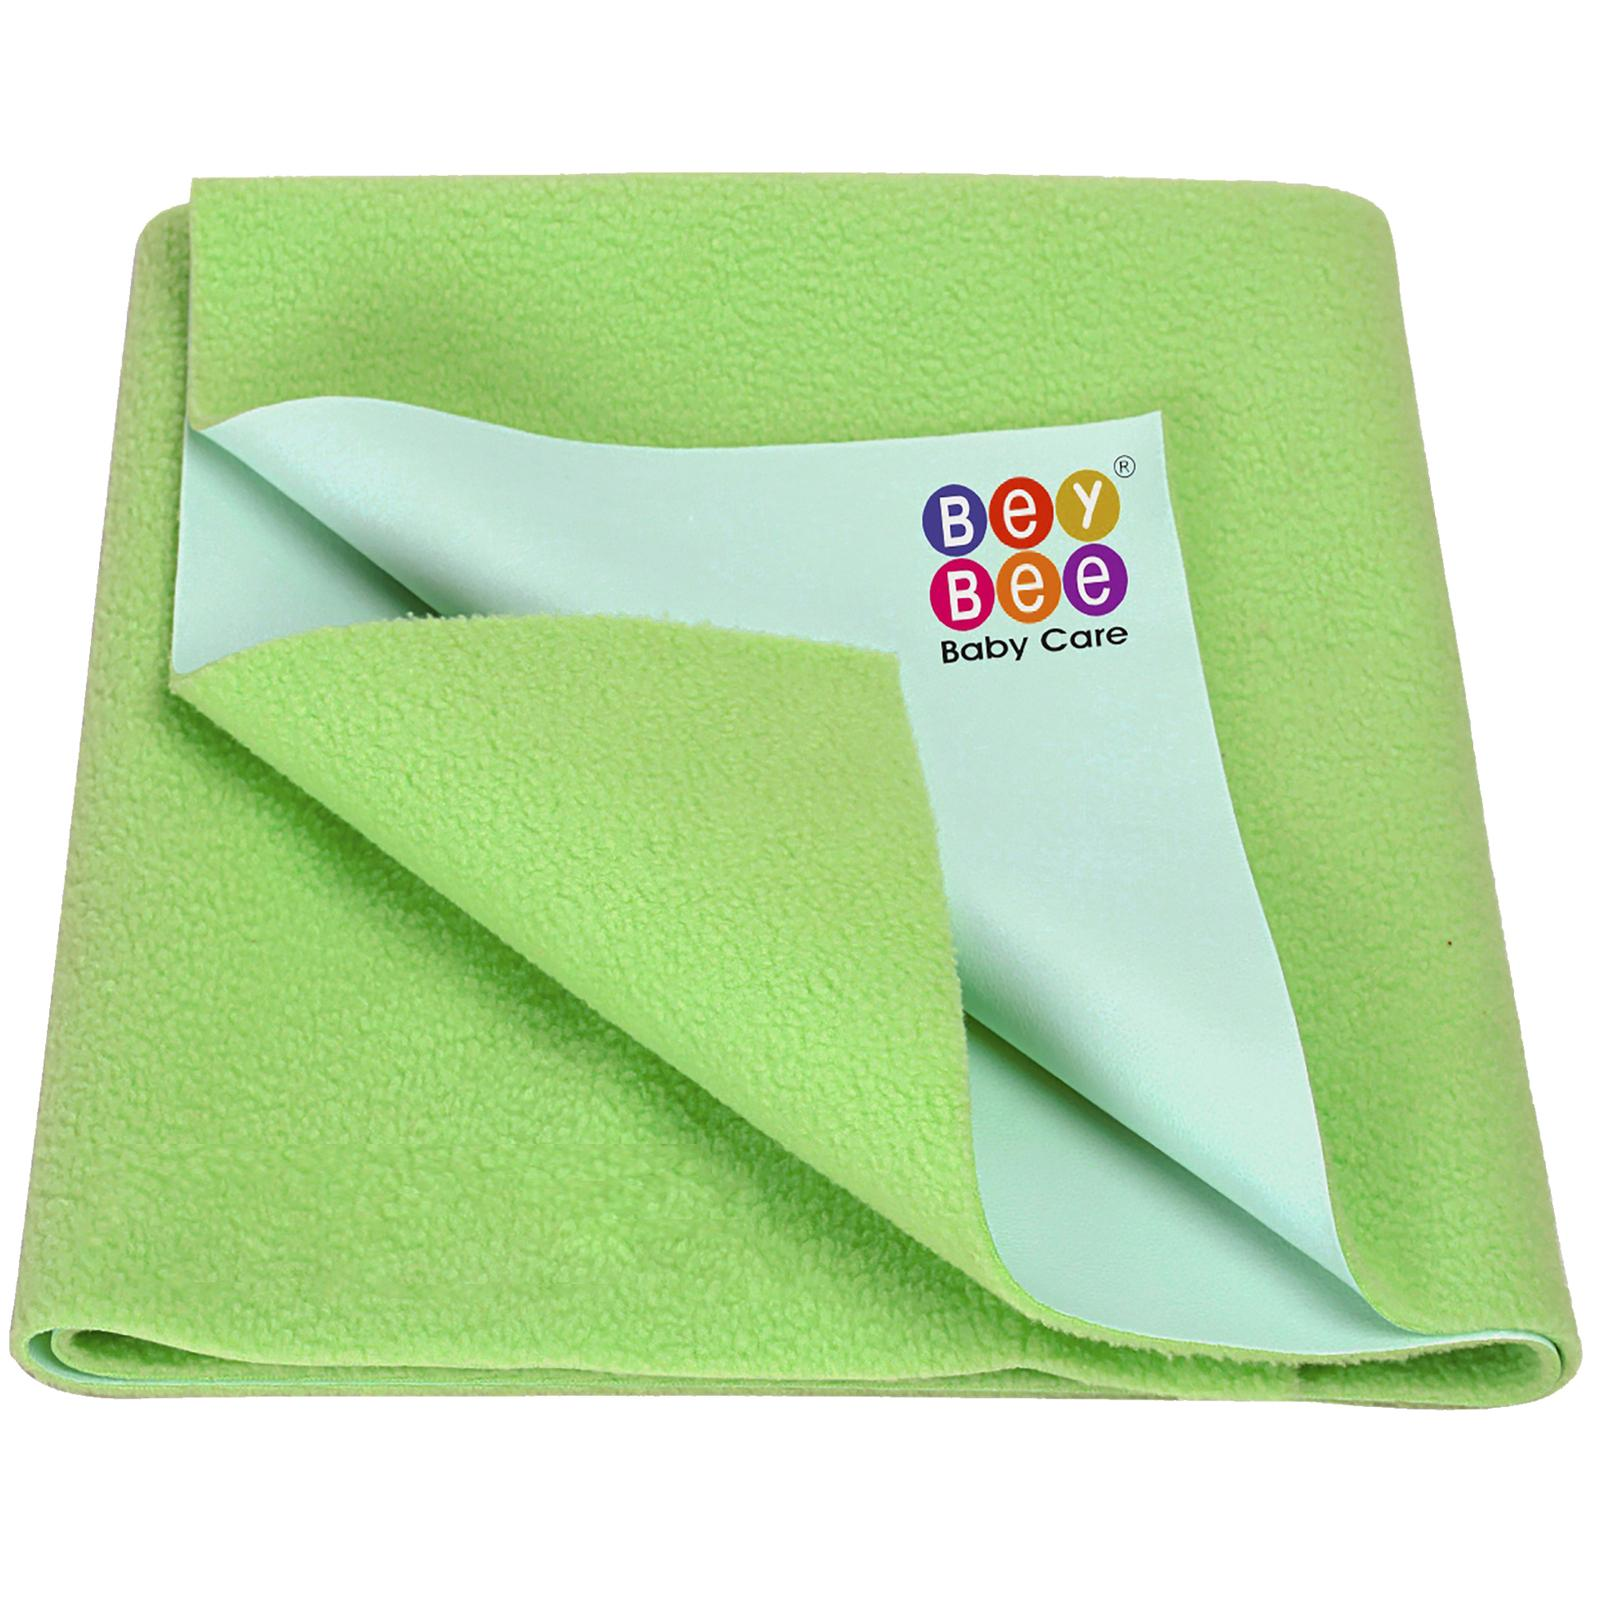 BeyBee Just Dry Baby Care Waterproof Double Bed Protector Sheet - X-Large (Light Green)